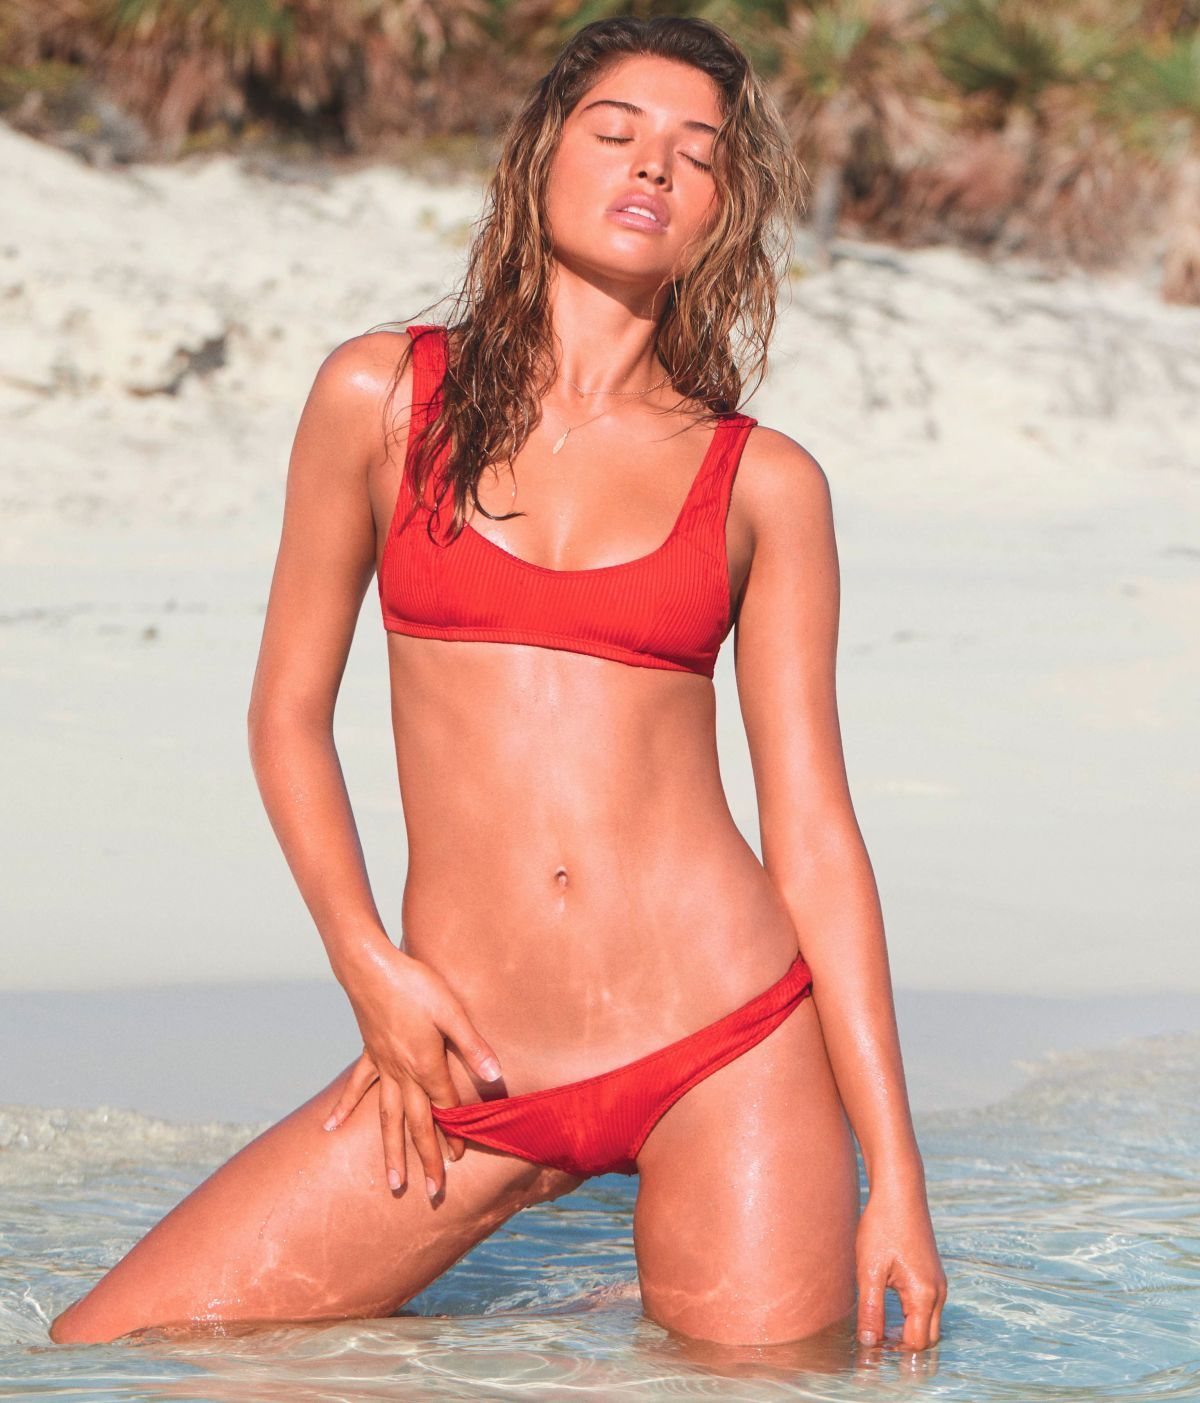 Paparazzi Daniela Lopez Osorio nudes (23 photos), Ass, Cleavage, Twitter, butt 2006